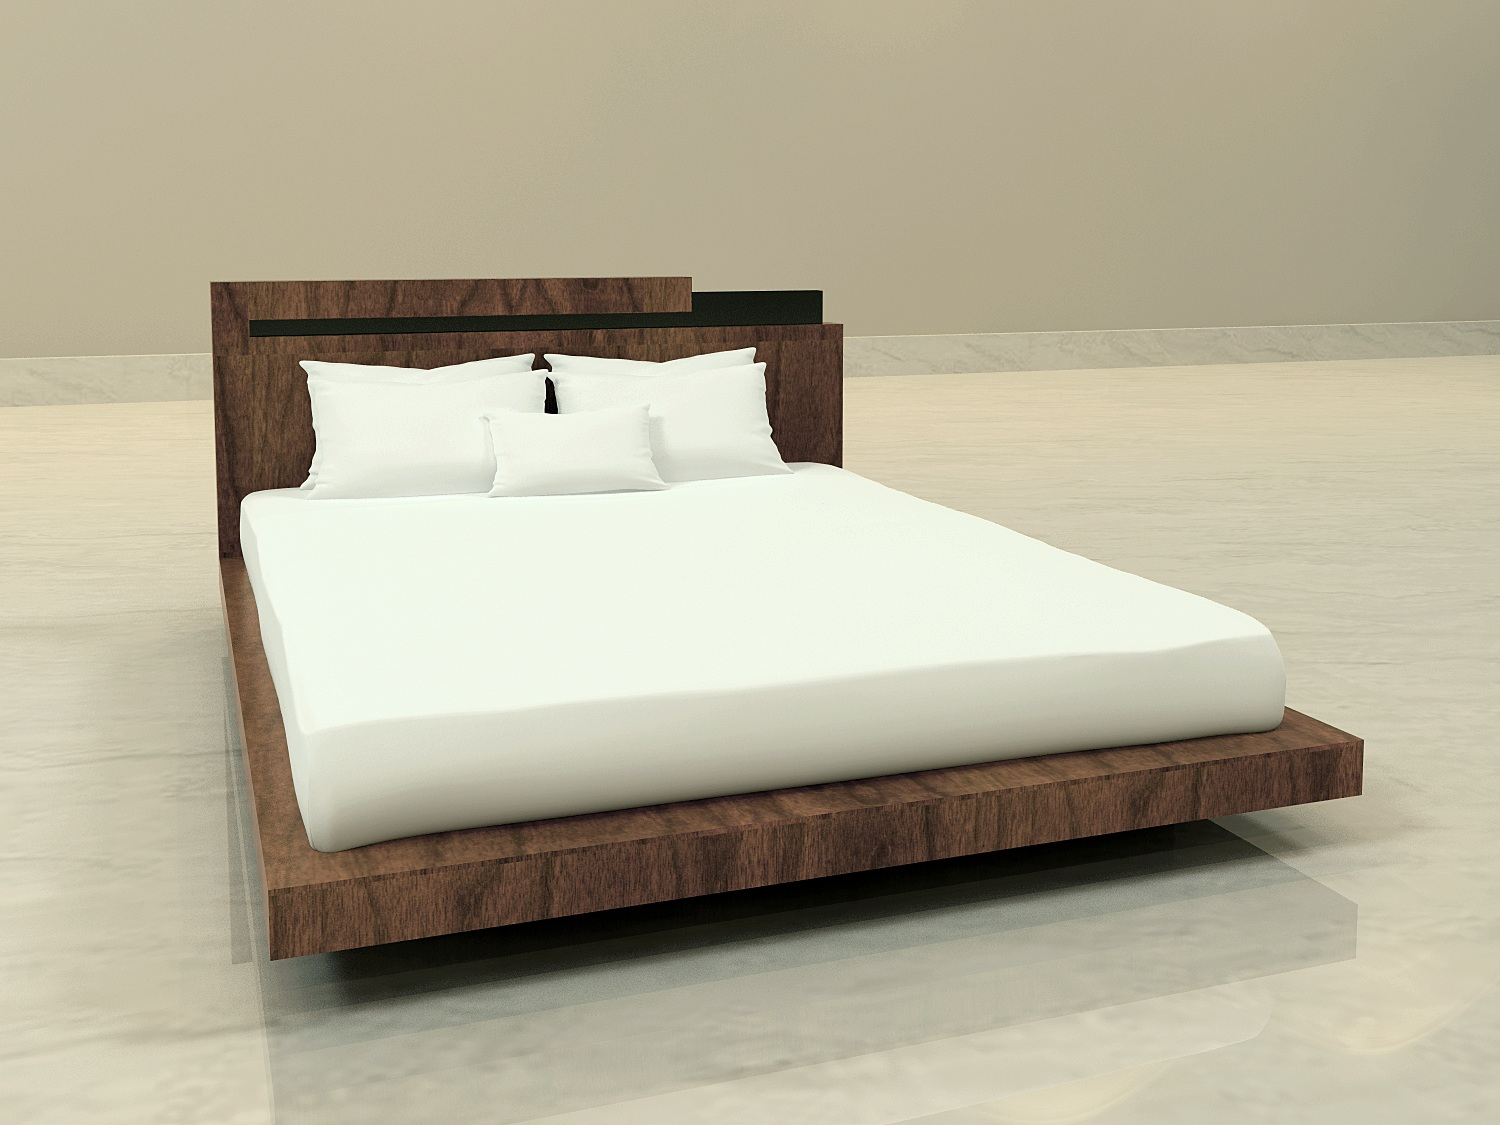 Tower Room Bed - Overall Dimensions for Cal King Bed: 96